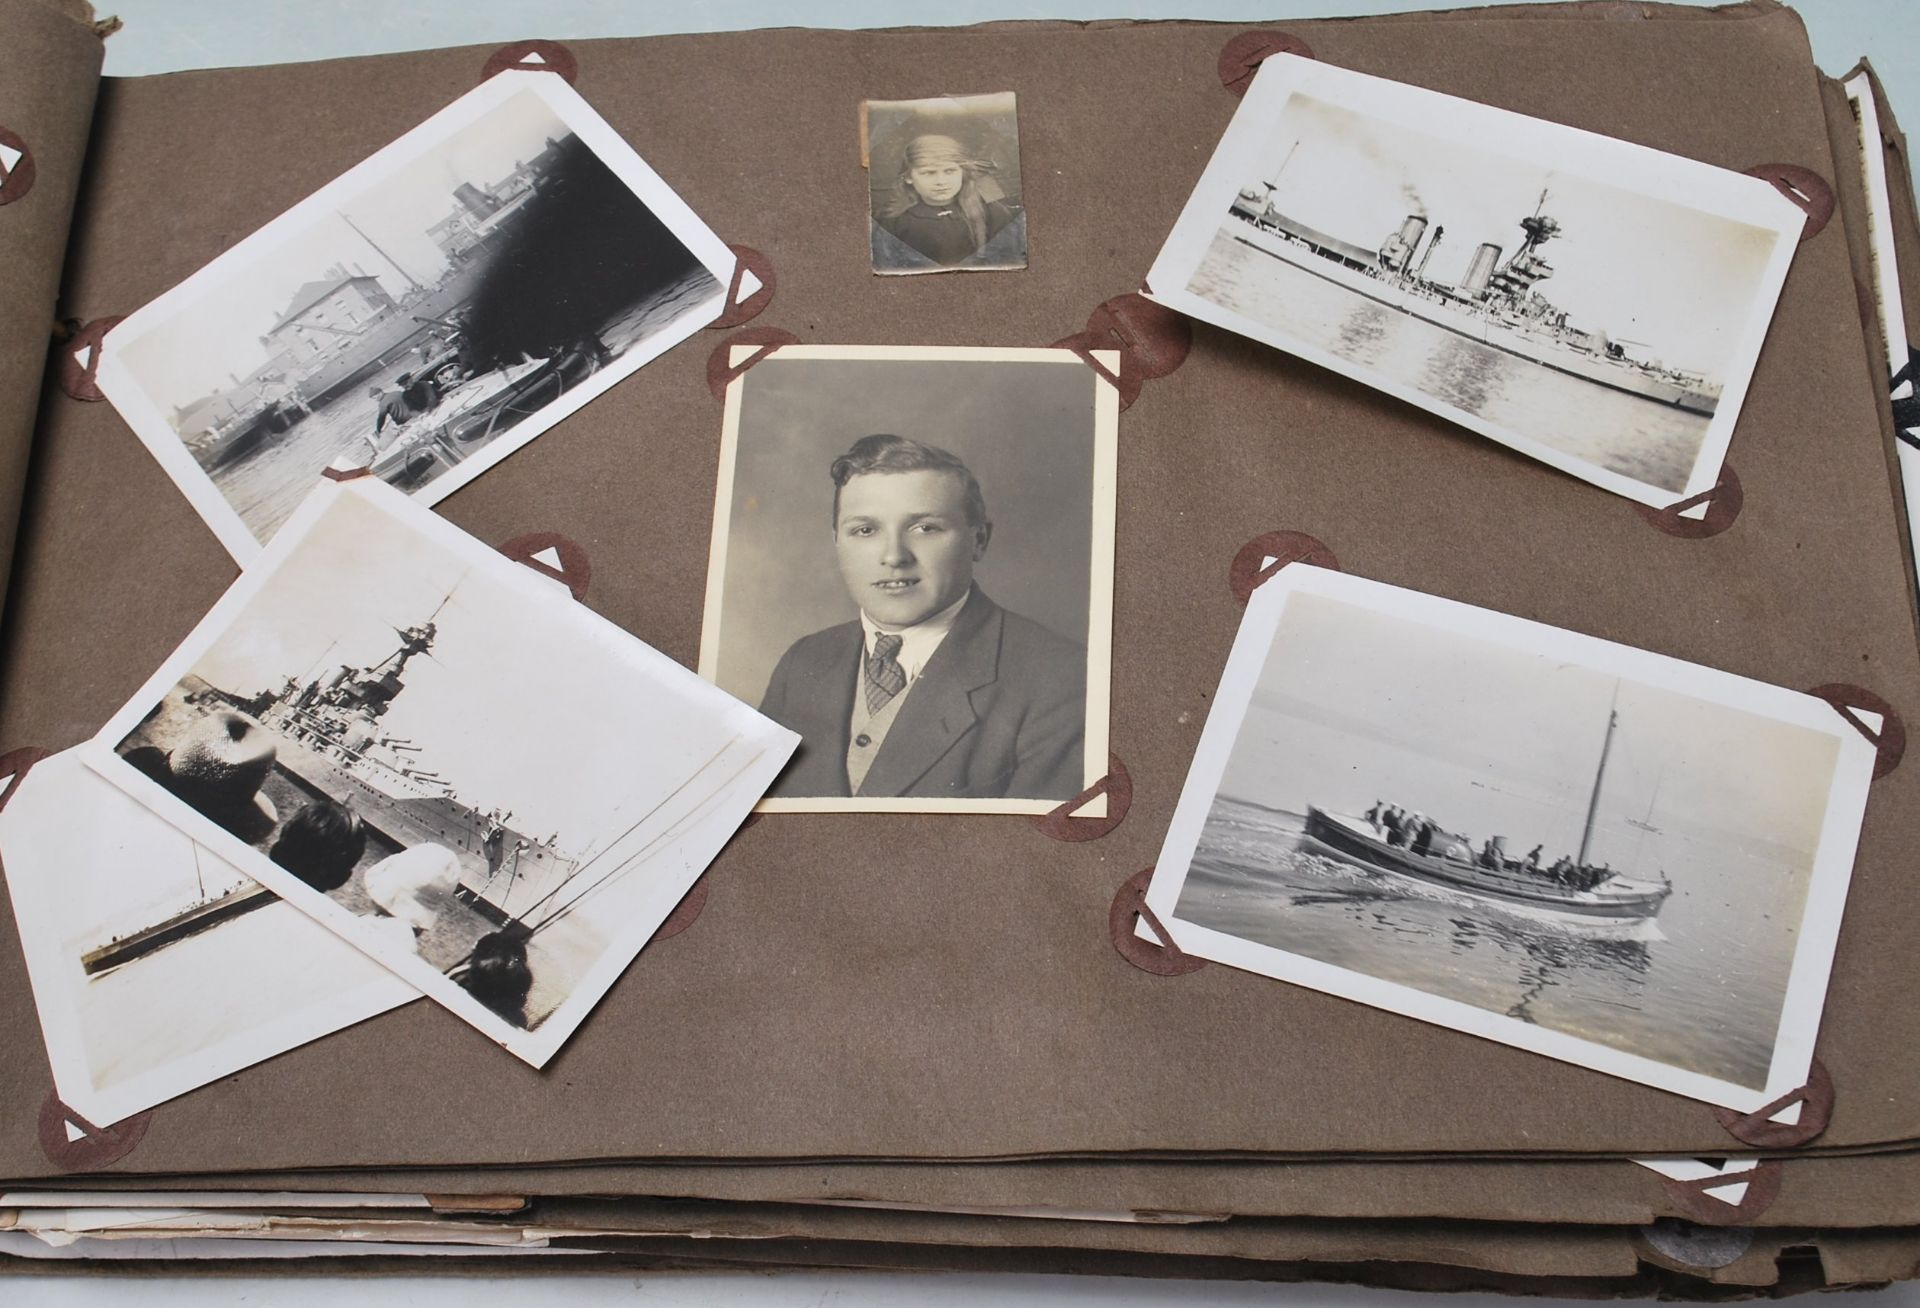 EARLY 20TH CENTURY BLACK AND WHITE PHOTO ALBUM - Image 4 of 14